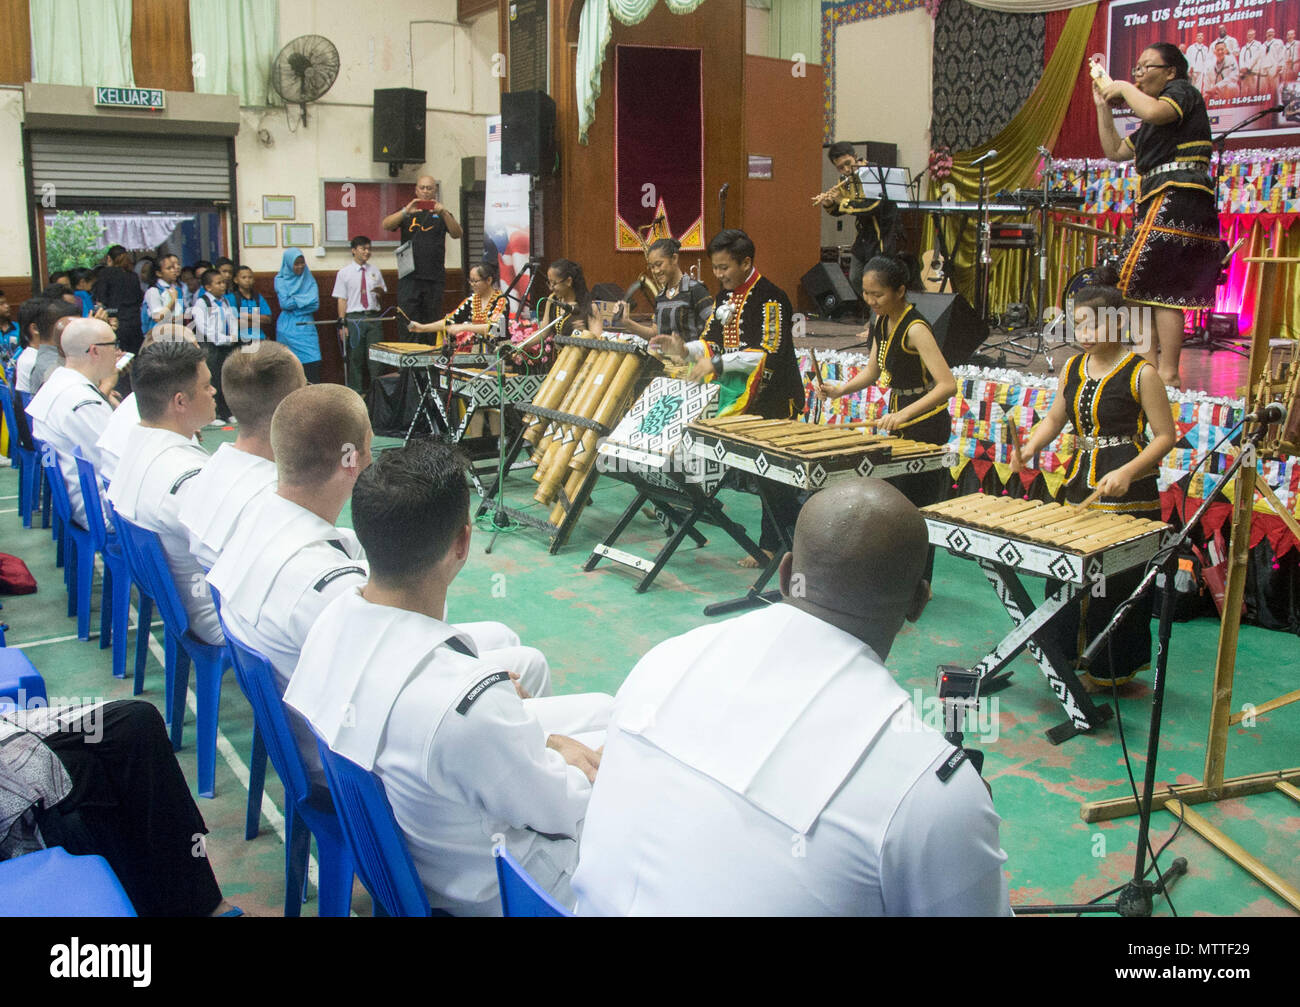 KOTA KINABALU, MALAYSIA (May 25, 2018) The SMK Tamparuli bamboo orchestra performs for members of the U.S. 7th Fleet Band at SMK Tamparuli High School in Kota Kinabalu, Malaysia. The band is supporting a U.S. 7th Fleet theater security cooperation mission and will be traveling to several Indo-Pacific countries in the coming weeks. (U.S. Navy photo by Mass Communication Specialist 2nd Class Chase Hawley/Released) Stock Photo